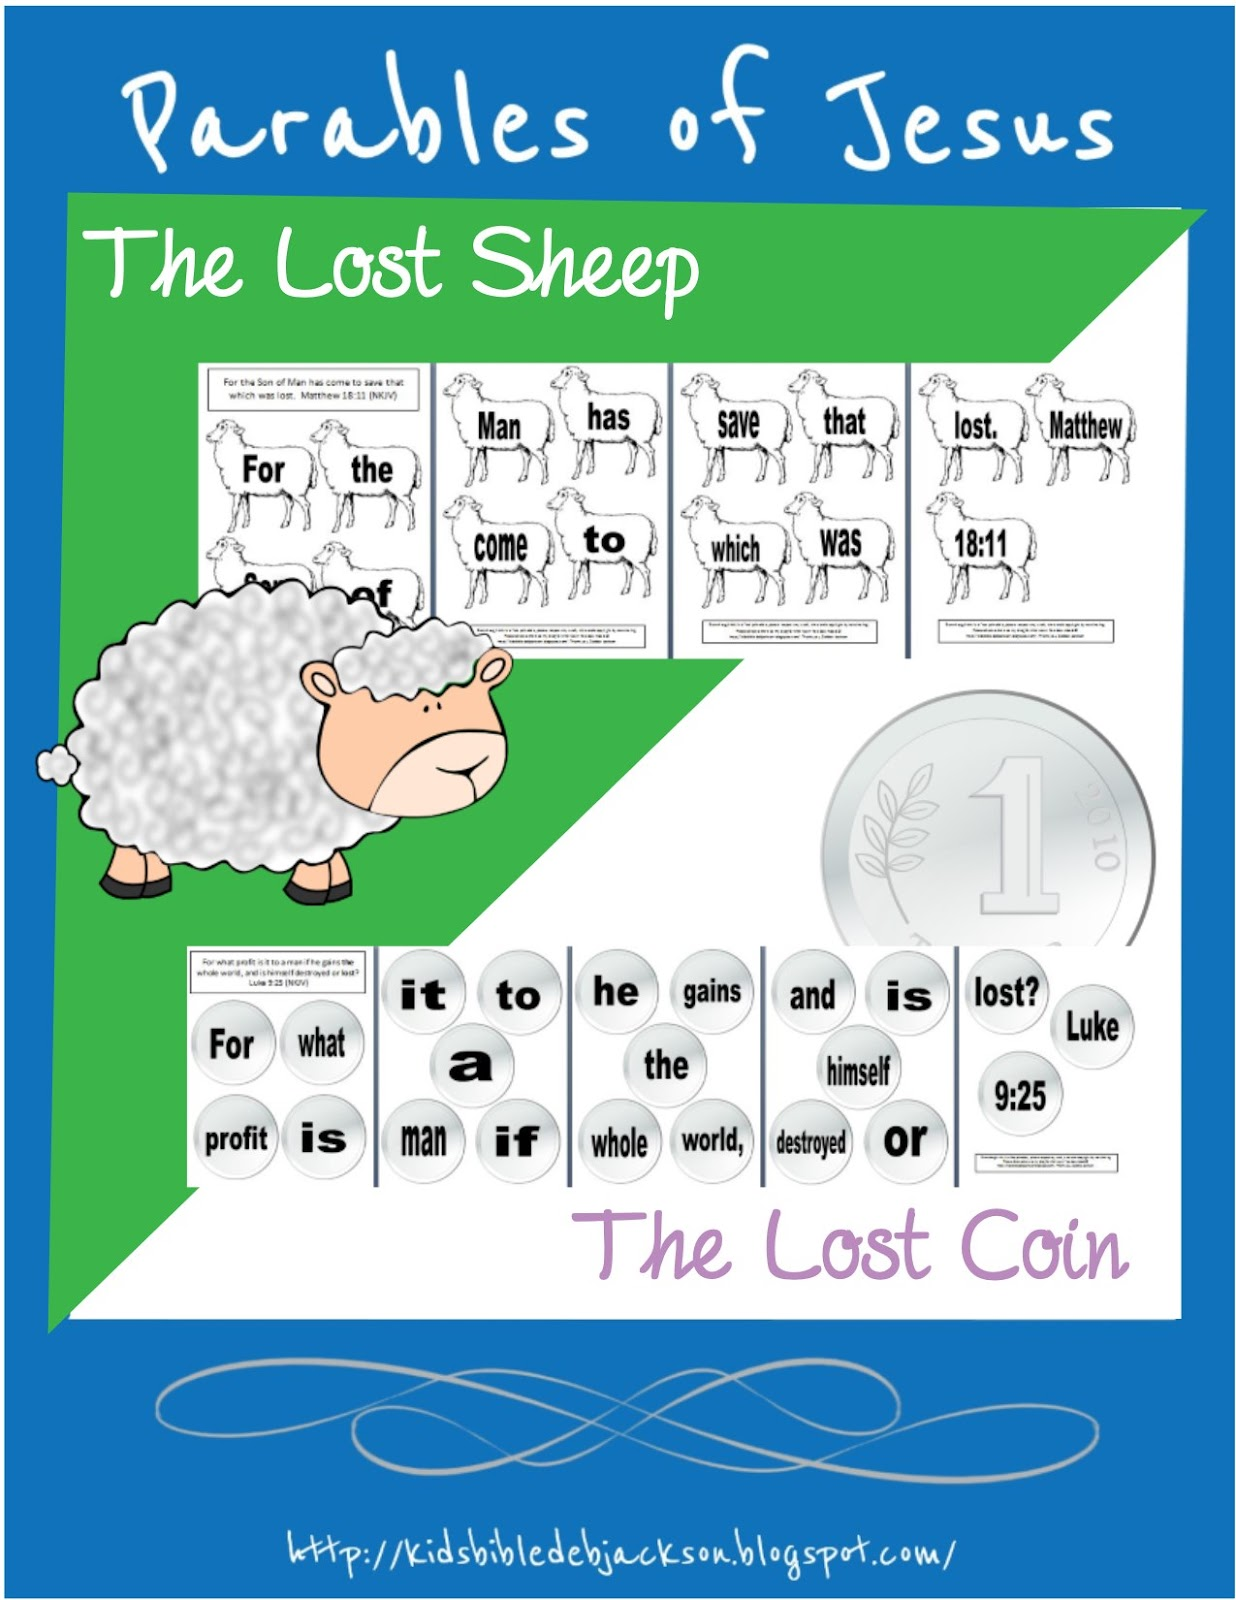 http://kidsbibledebjackson.blogspot.com/2014/10/parable-of-lost-sheep-lost-coin.html